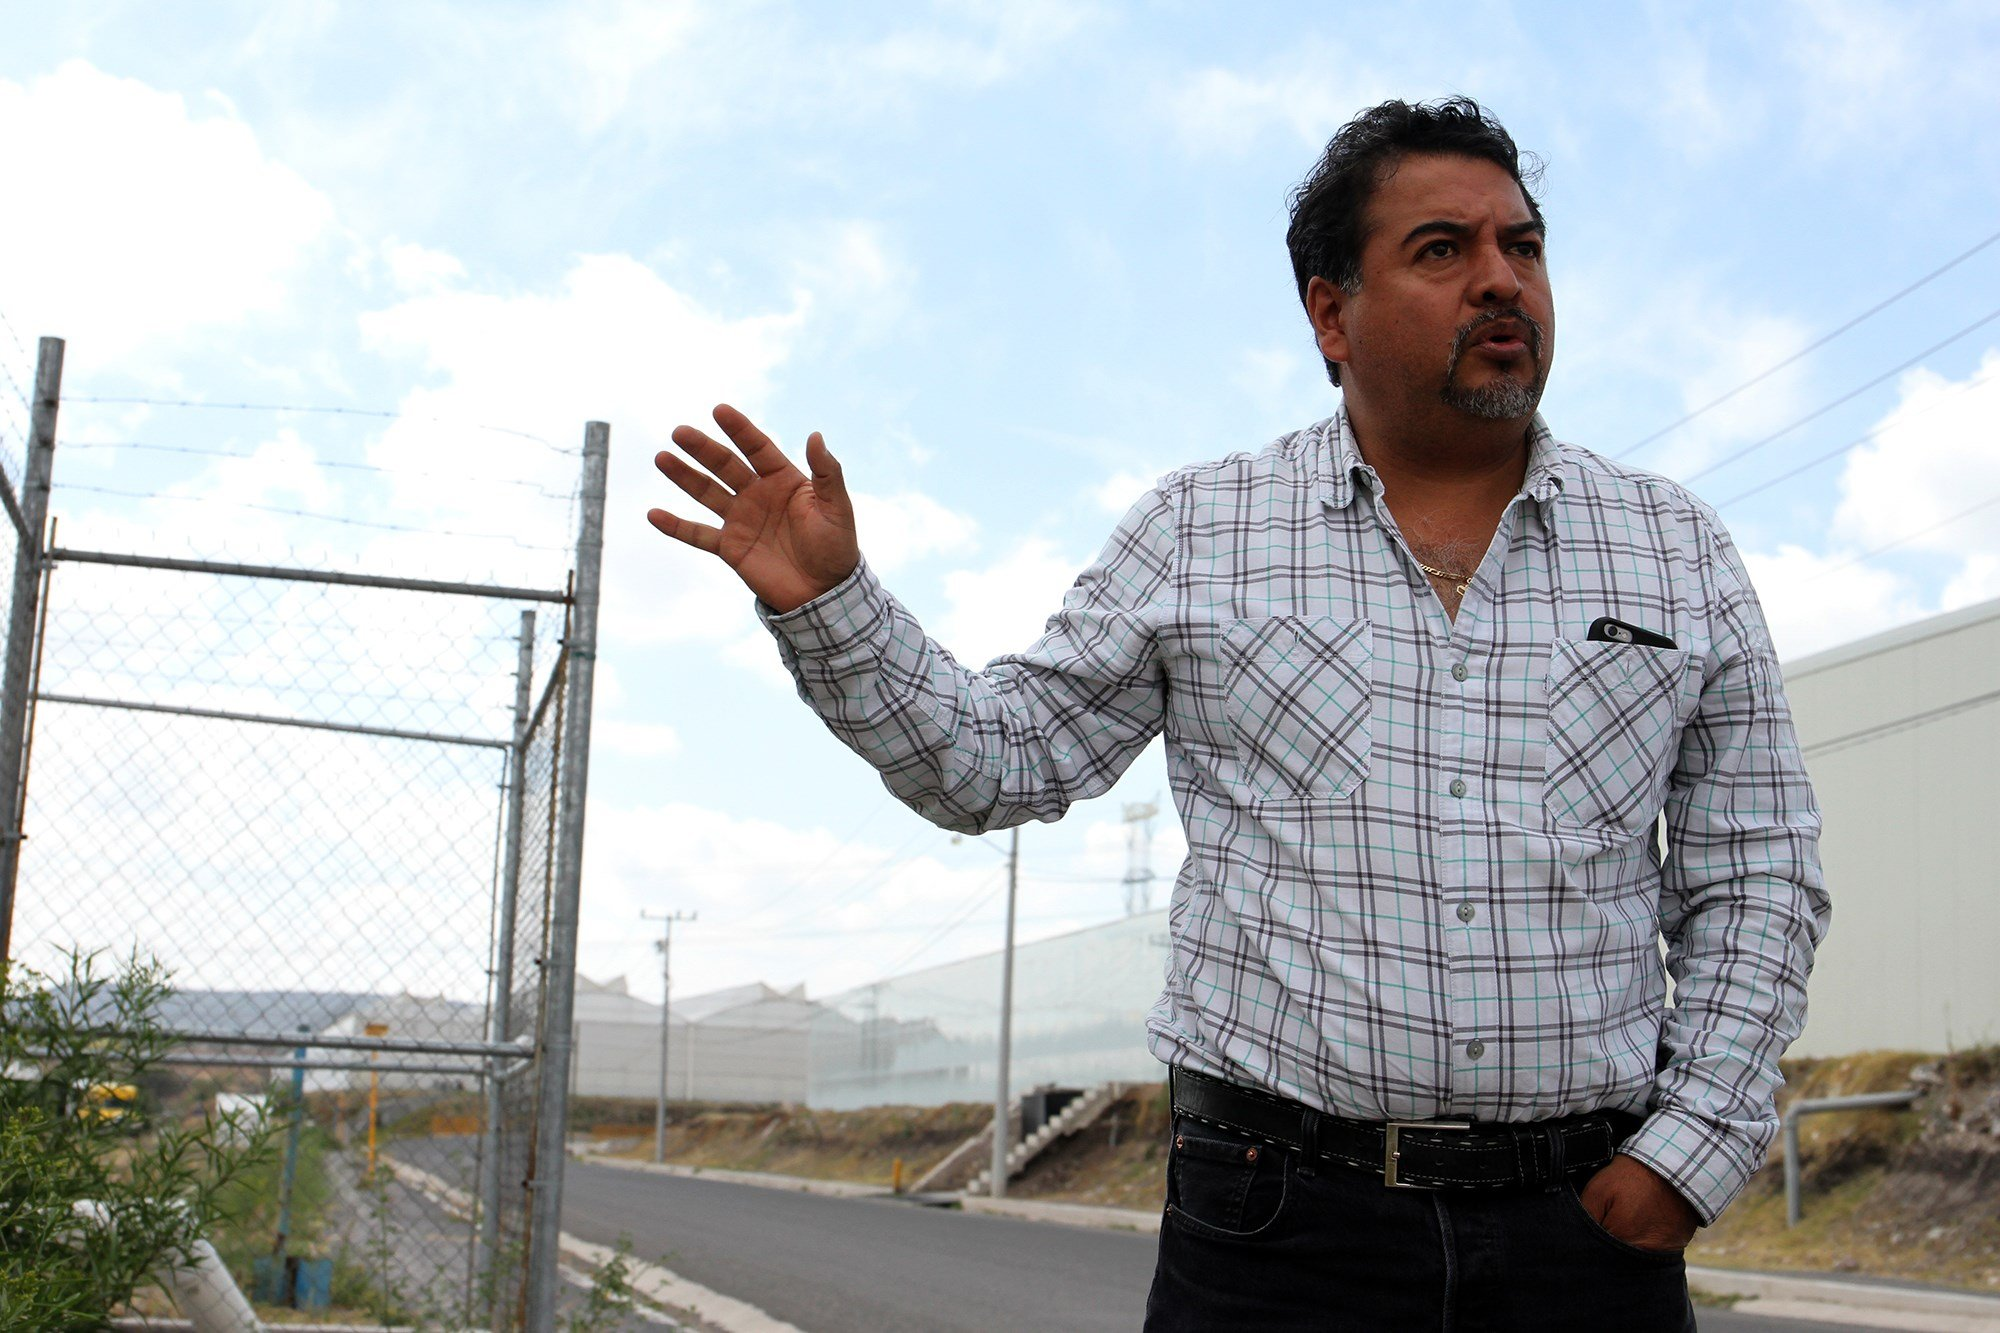 Alfonso Meneses Melo, the administrator of Agropark, stands outside the complex of greenhouses that make up Agropark in March. (Photo by Megan Janetsky/Cronkite Borderlands Initiative)